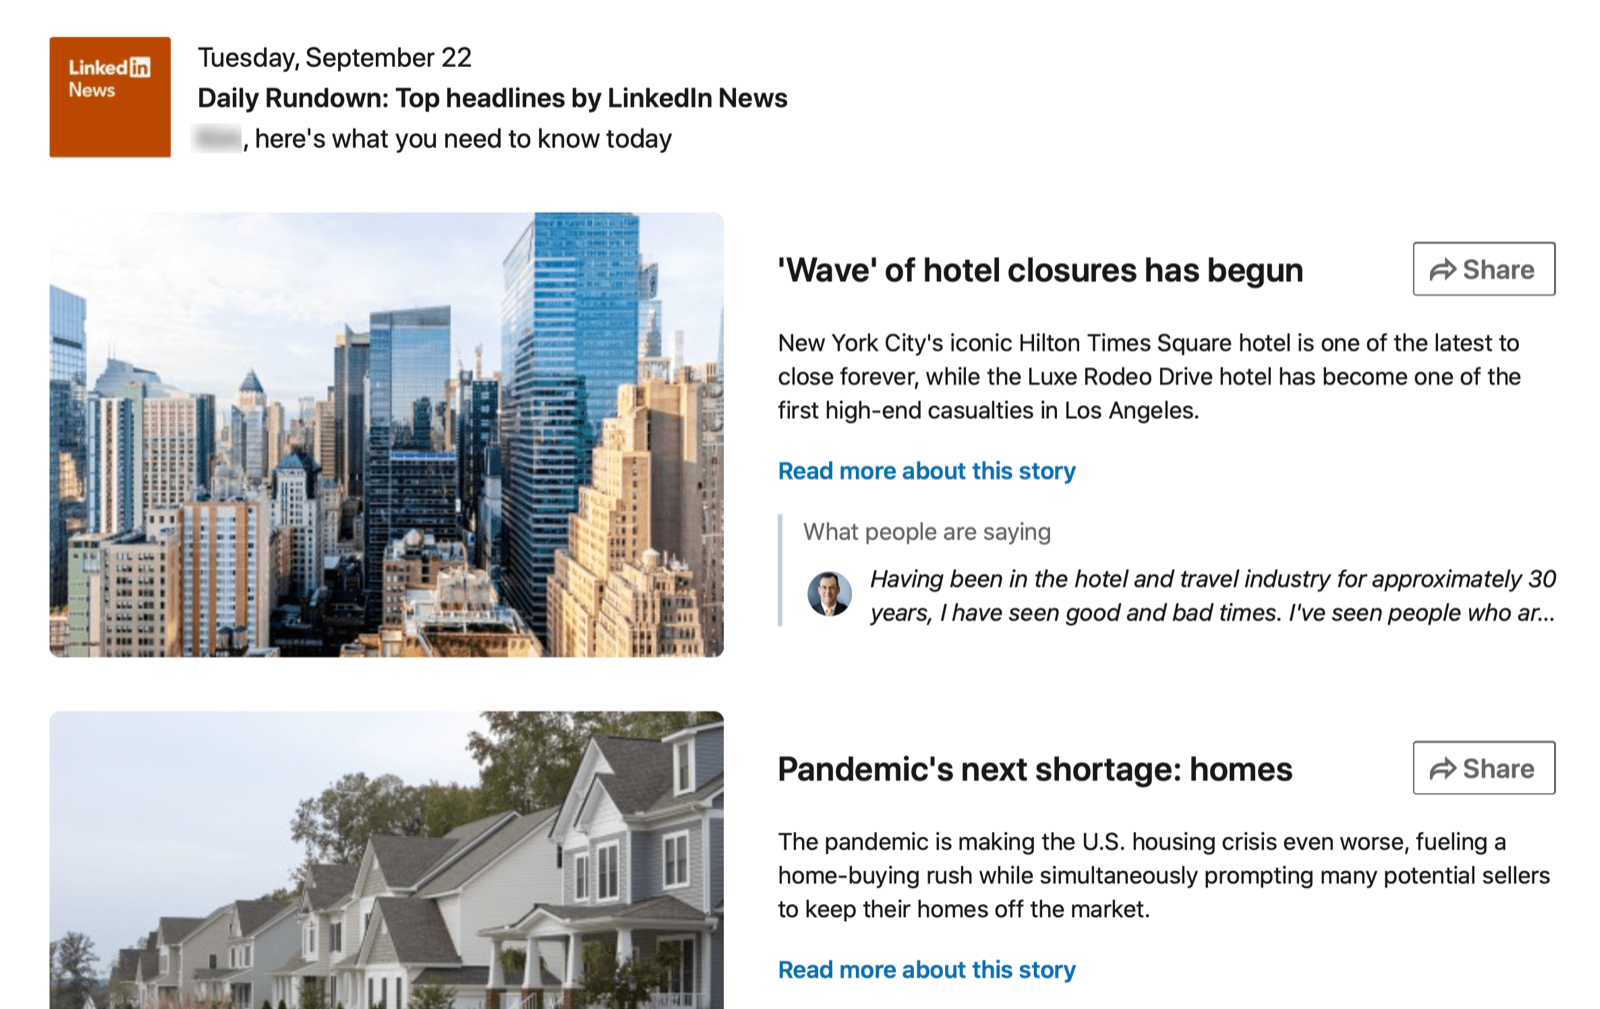 example of a linkedin news item selected for the daily rundown newsletter